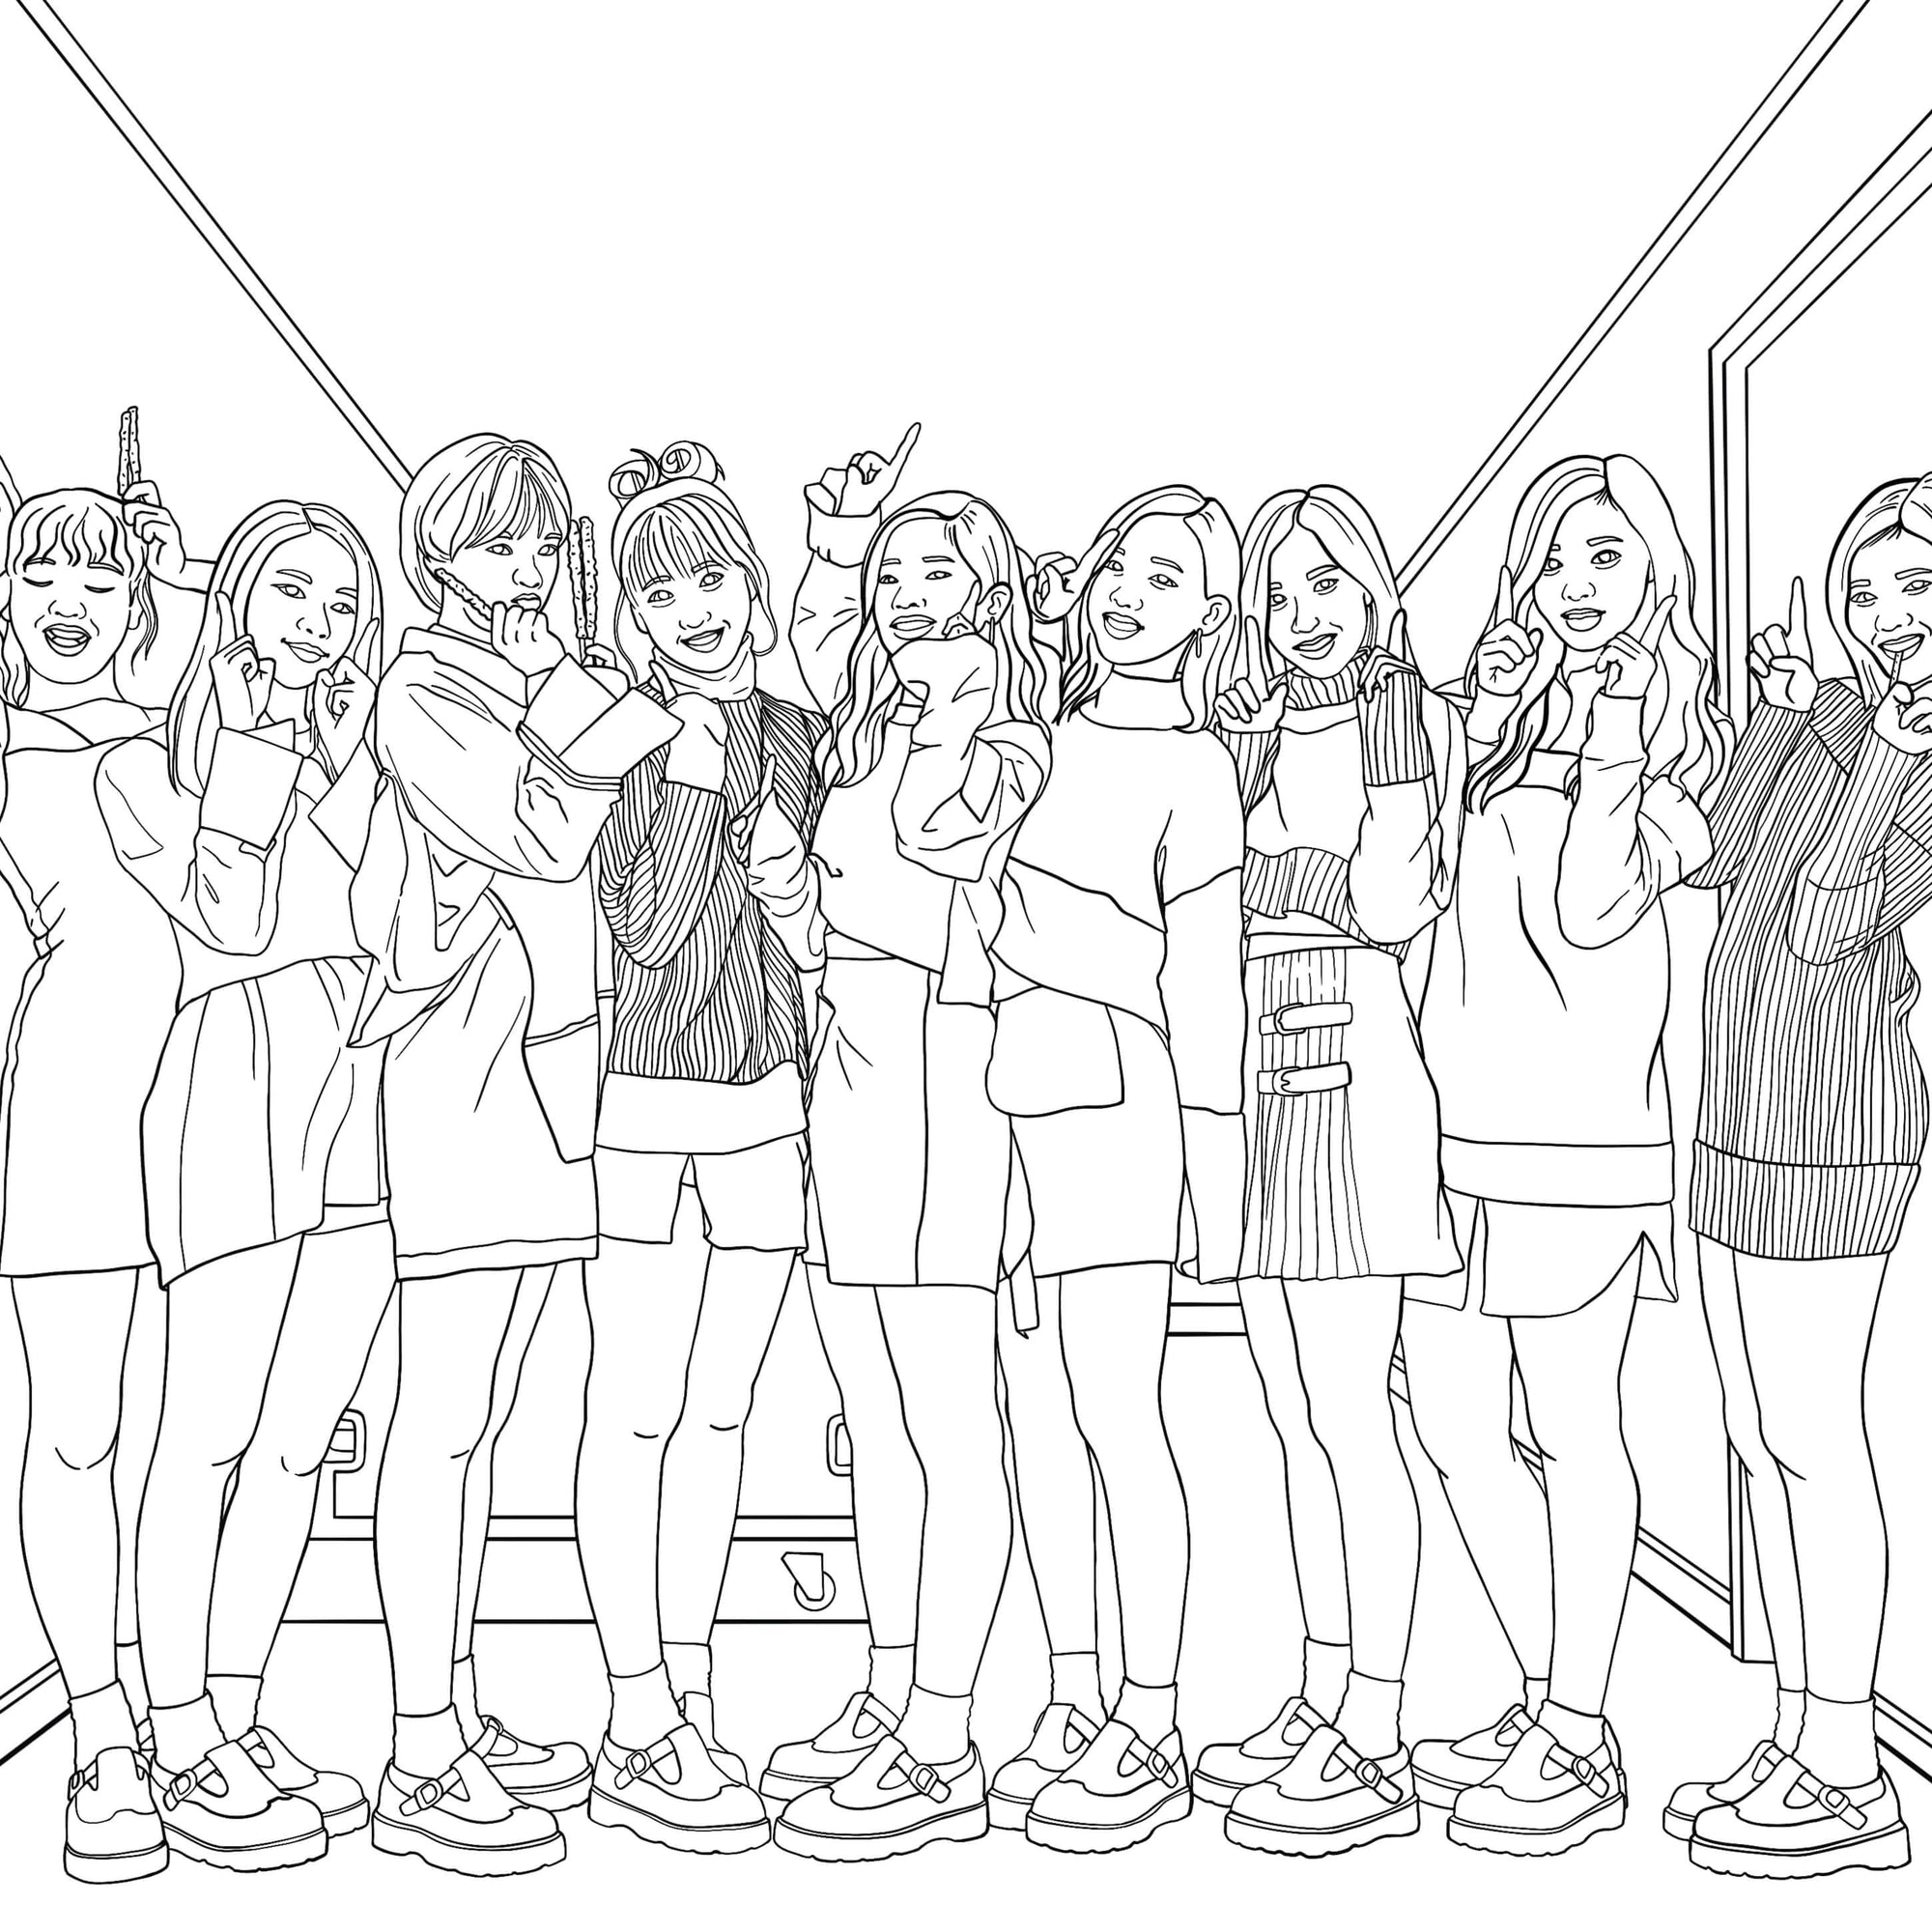 Twice coloring page